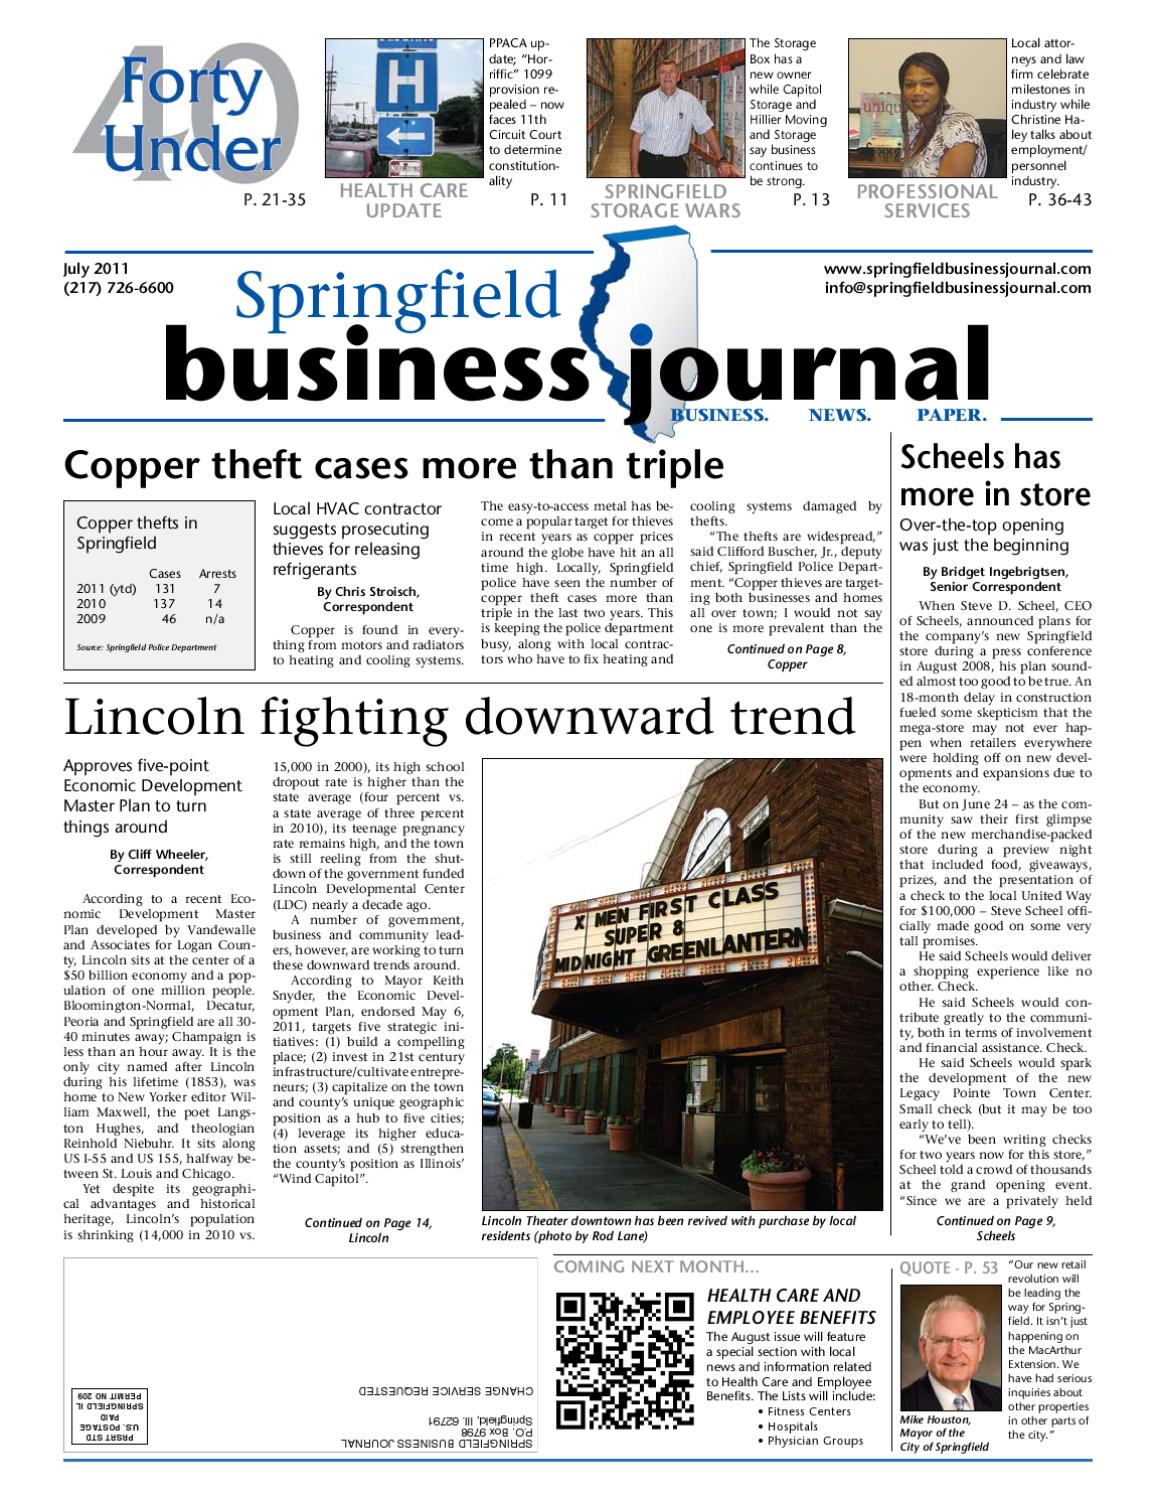 Springfield Business Journal July 2011 Il By Goweb1 Xl Data Hotrod Rp 220000 Issuu